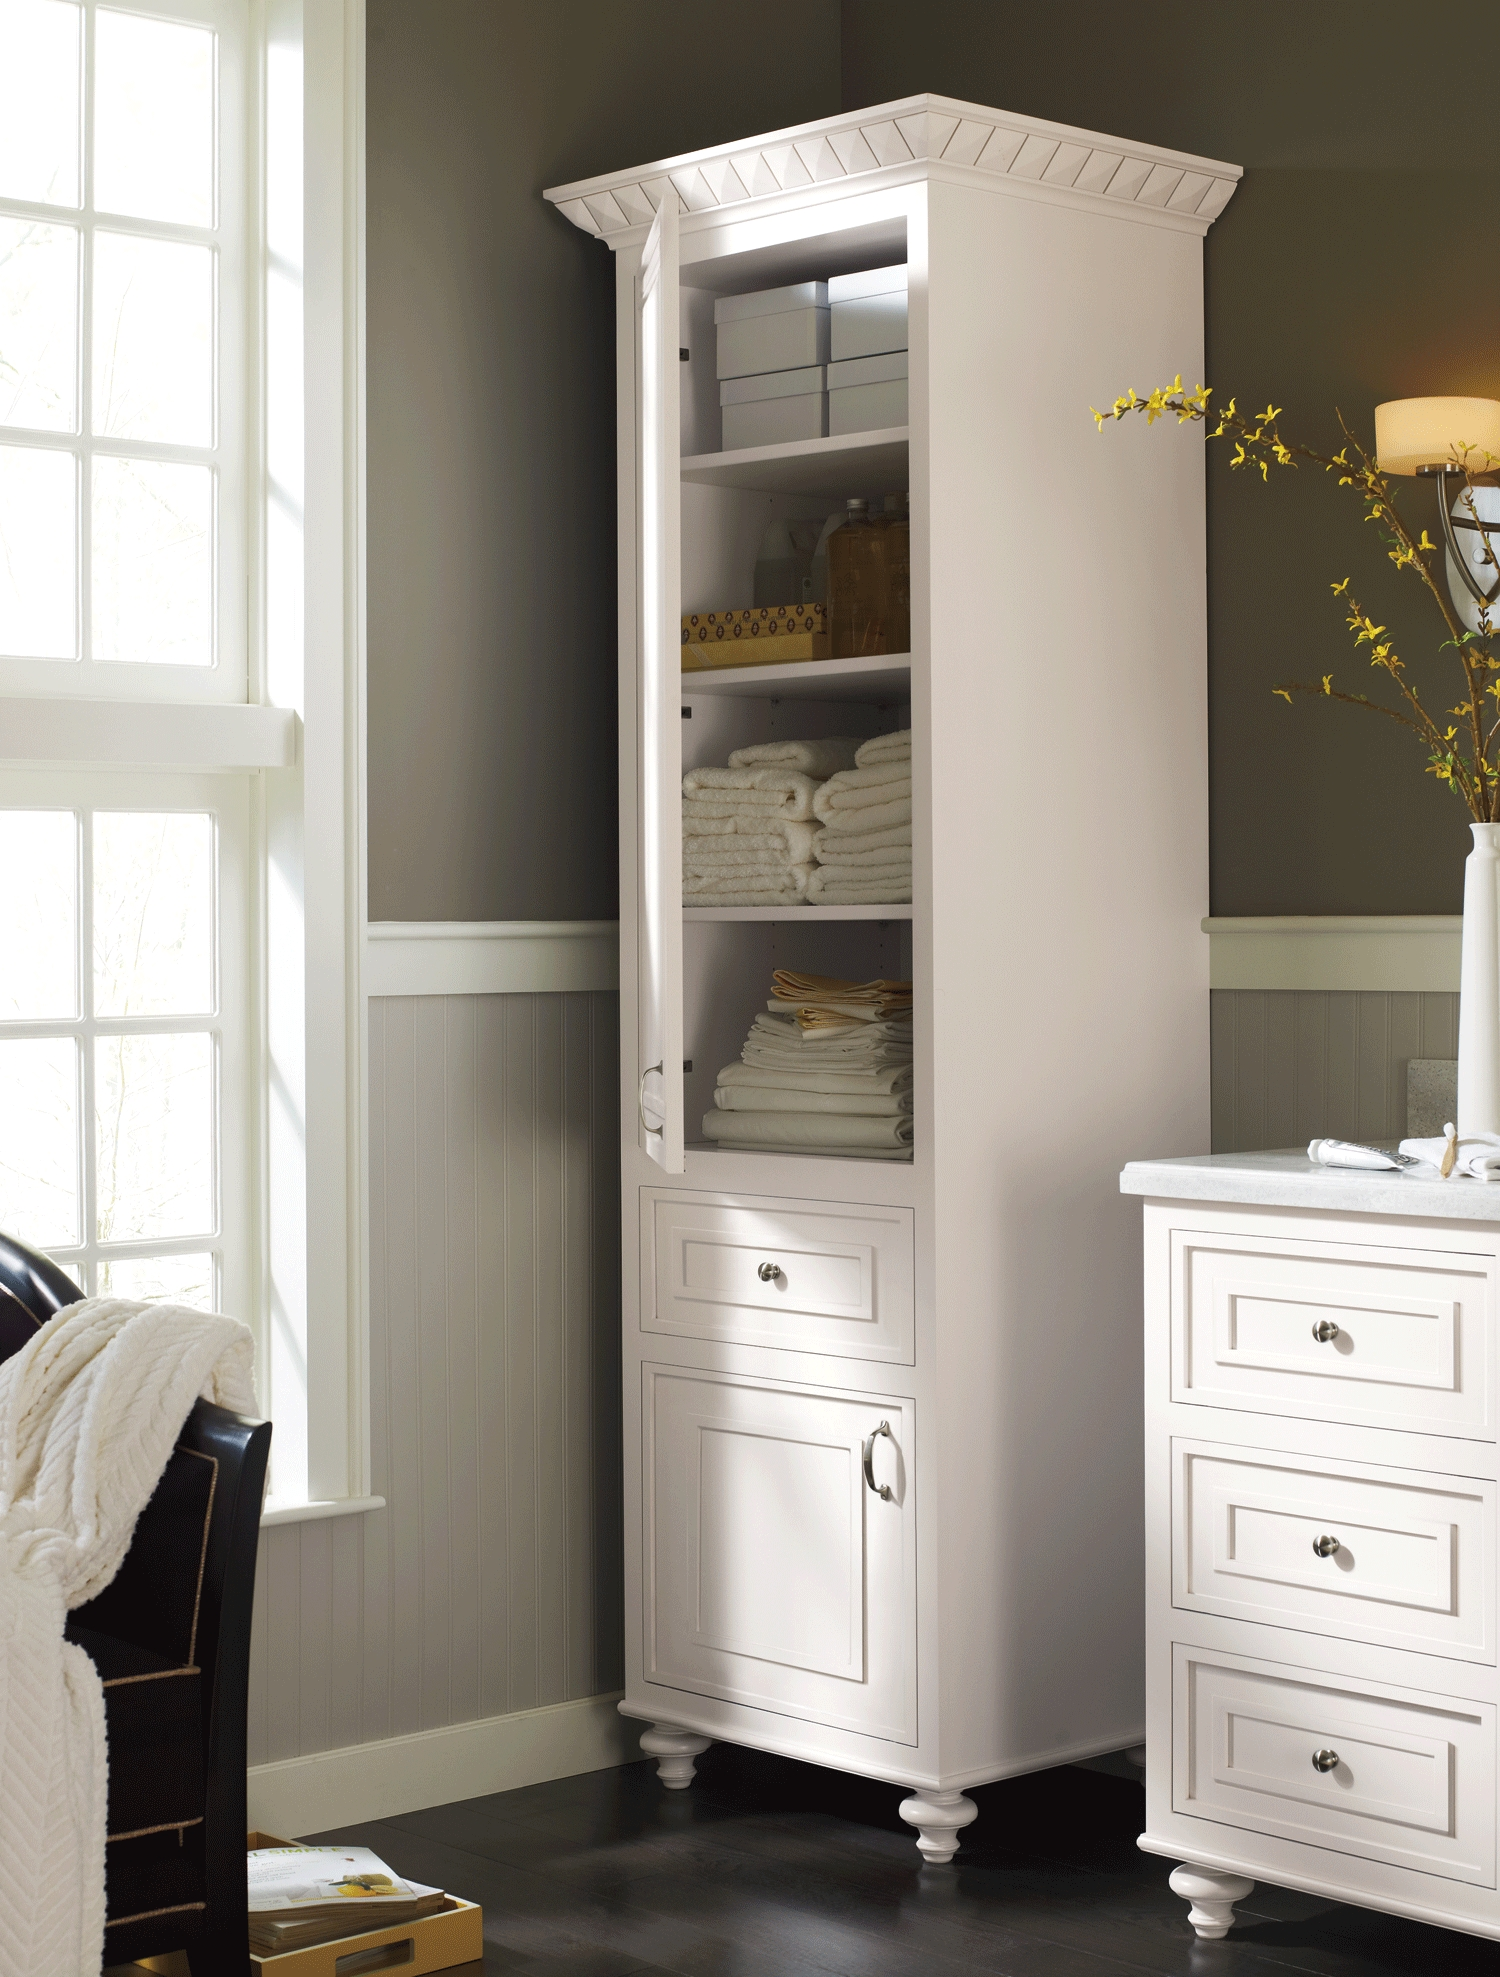 Permalink to Stand Alone Cabinet For Bathroom